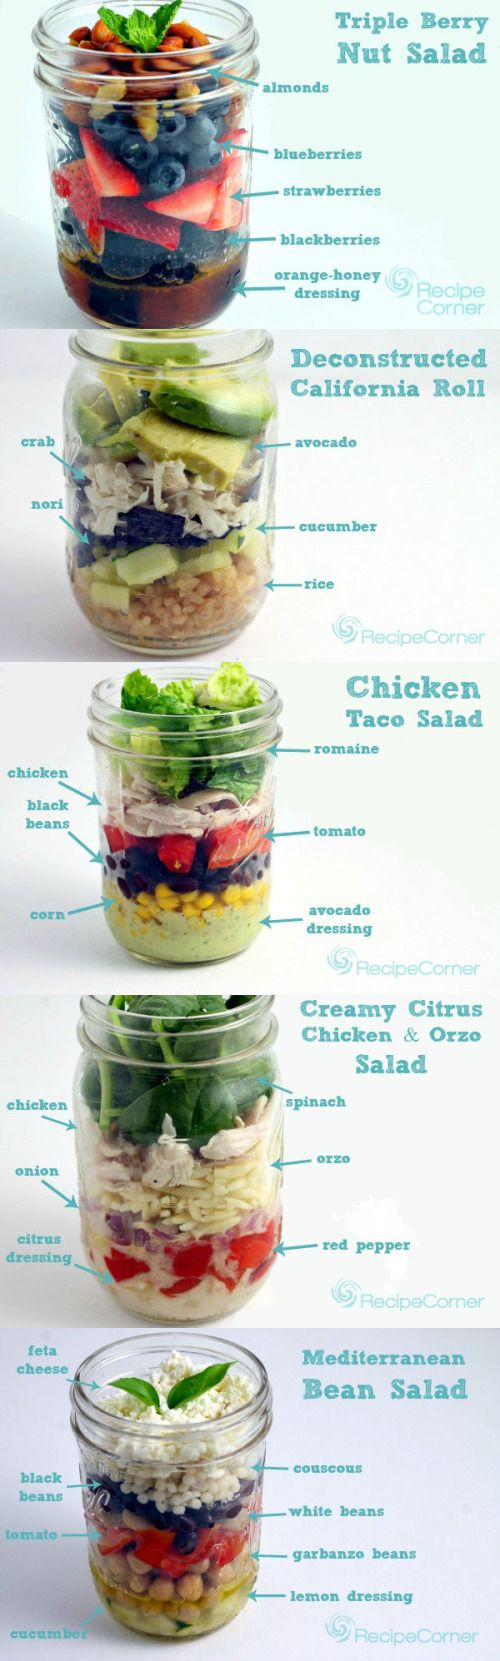 5 Affordable Mason Jar Salads Under 500 Calories…RECIPES